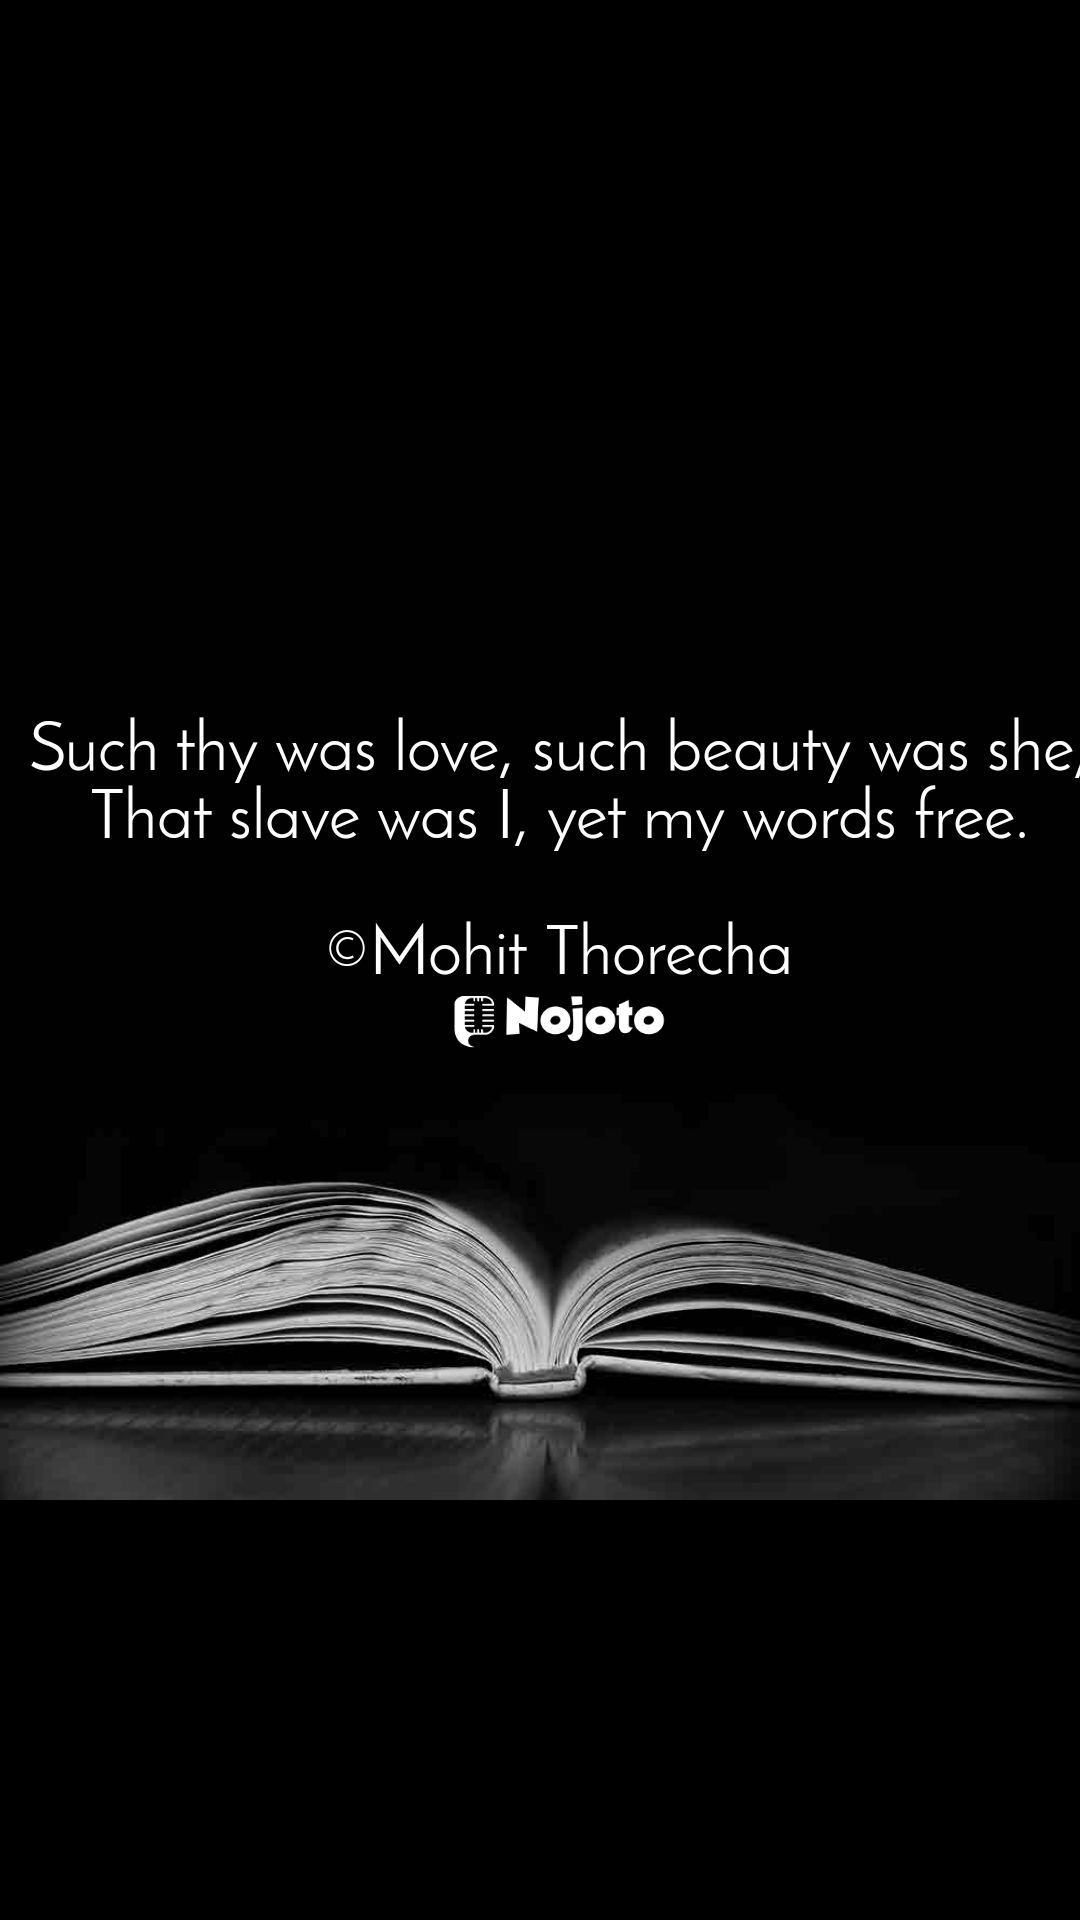 Such thy was love, such beauty was she, That slave was I, yet my words free.  ©Mohit Thorecha